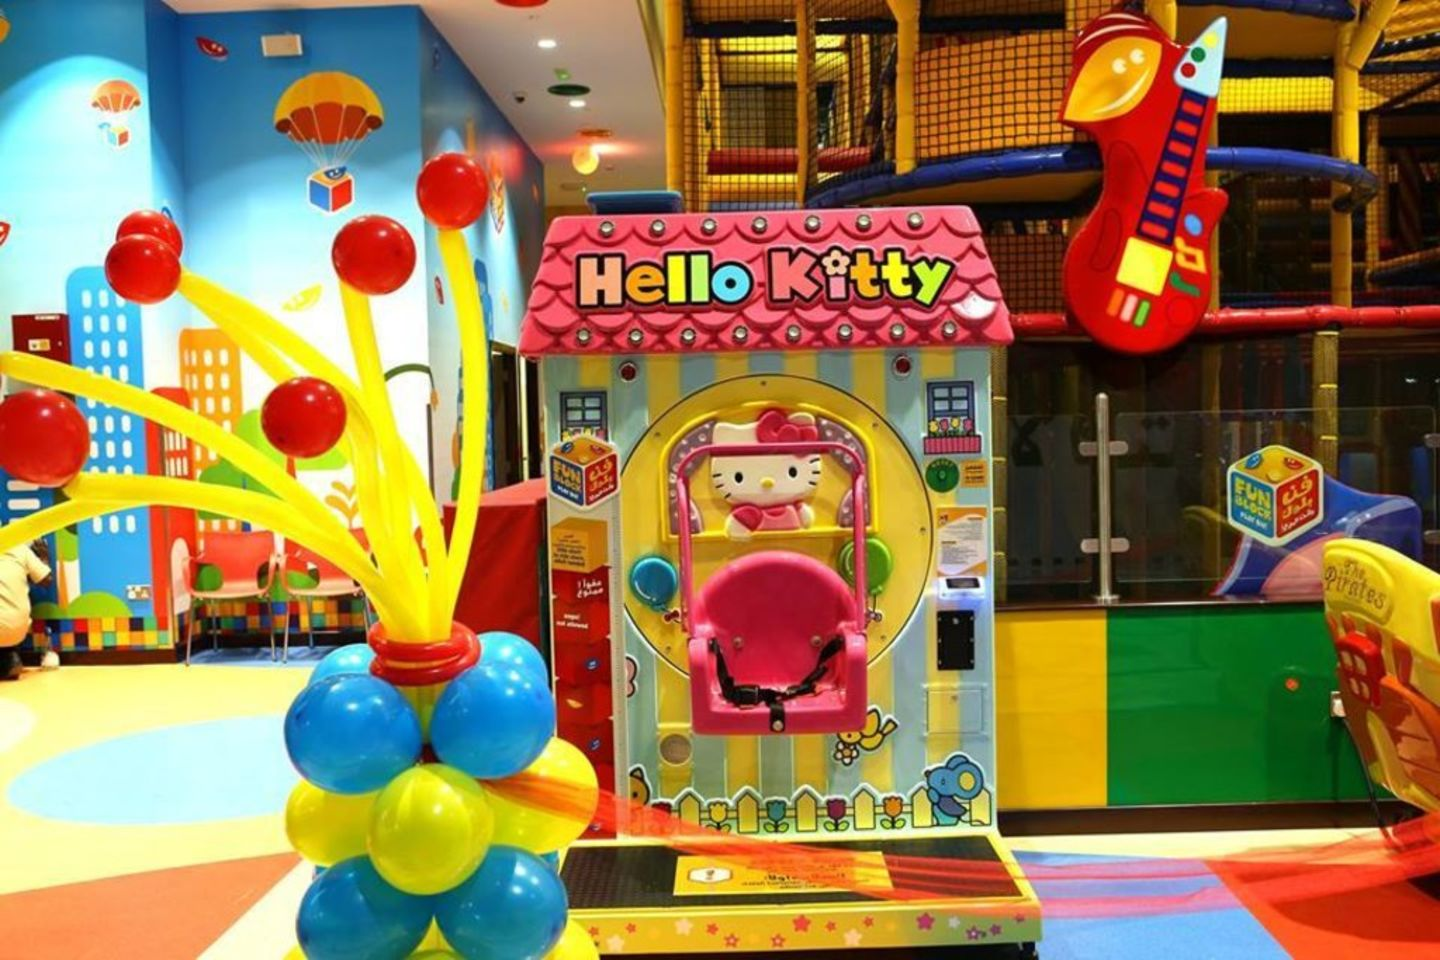 HiDubai-business-fun-block-leisure-culture-amusement-parks-arcades-al-mizhar-1-dubai